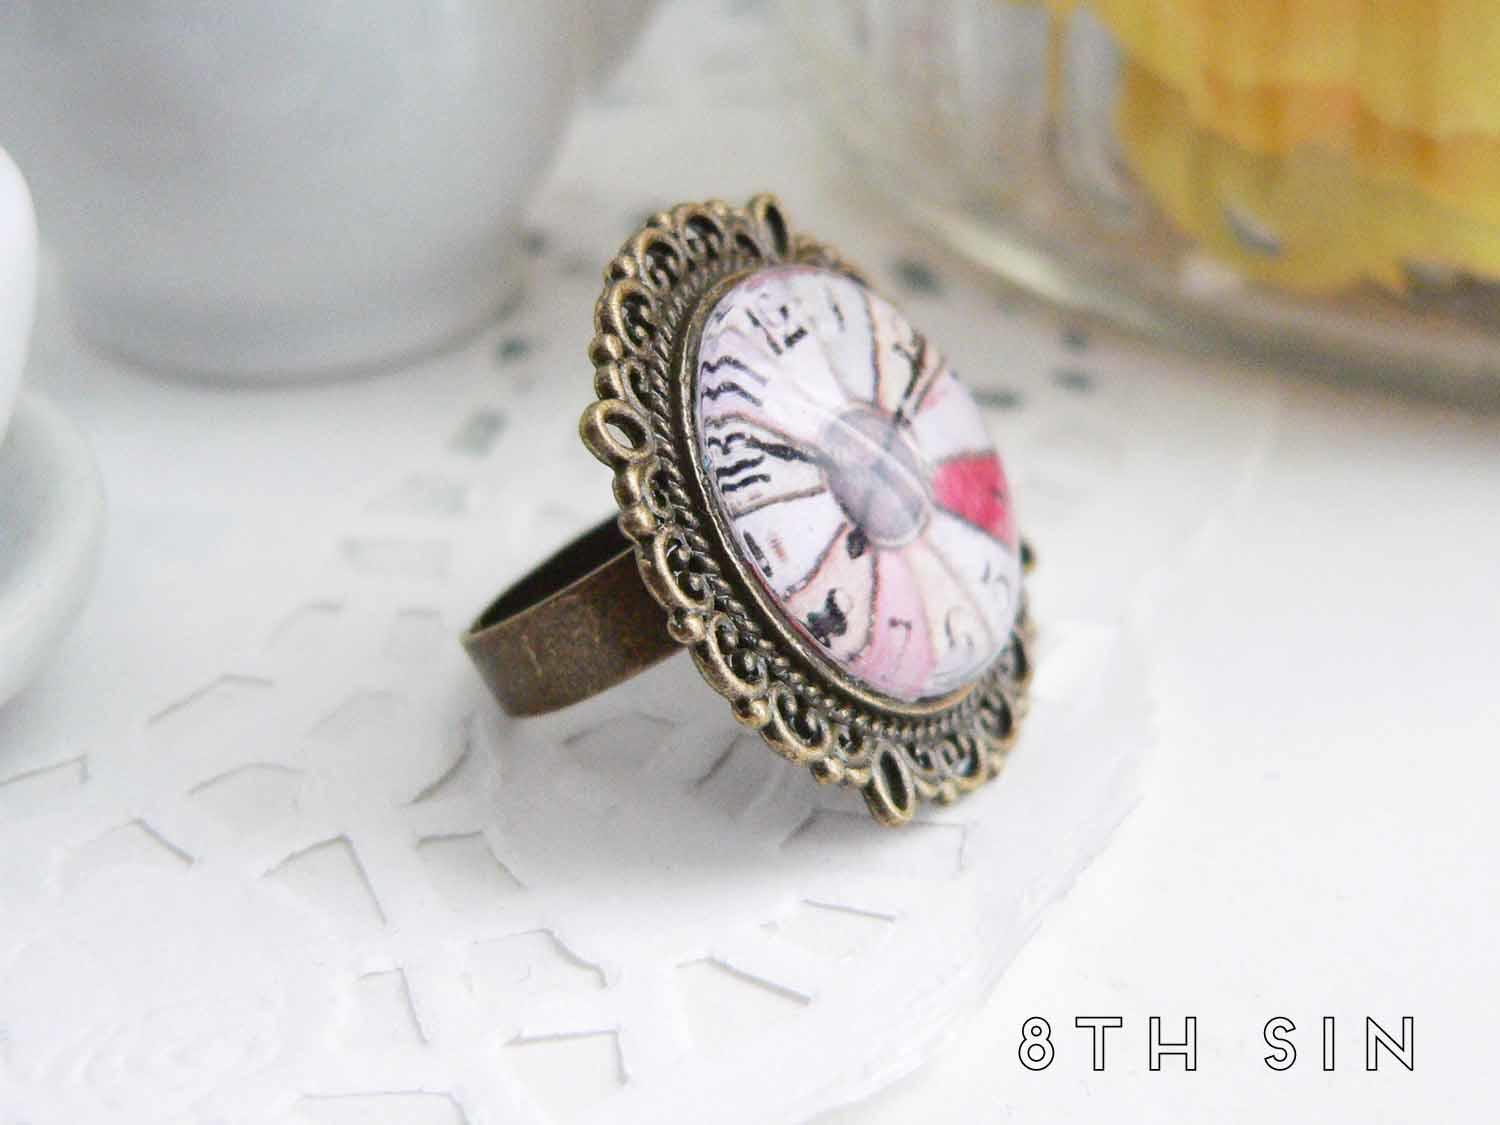 antique bronze clock ring